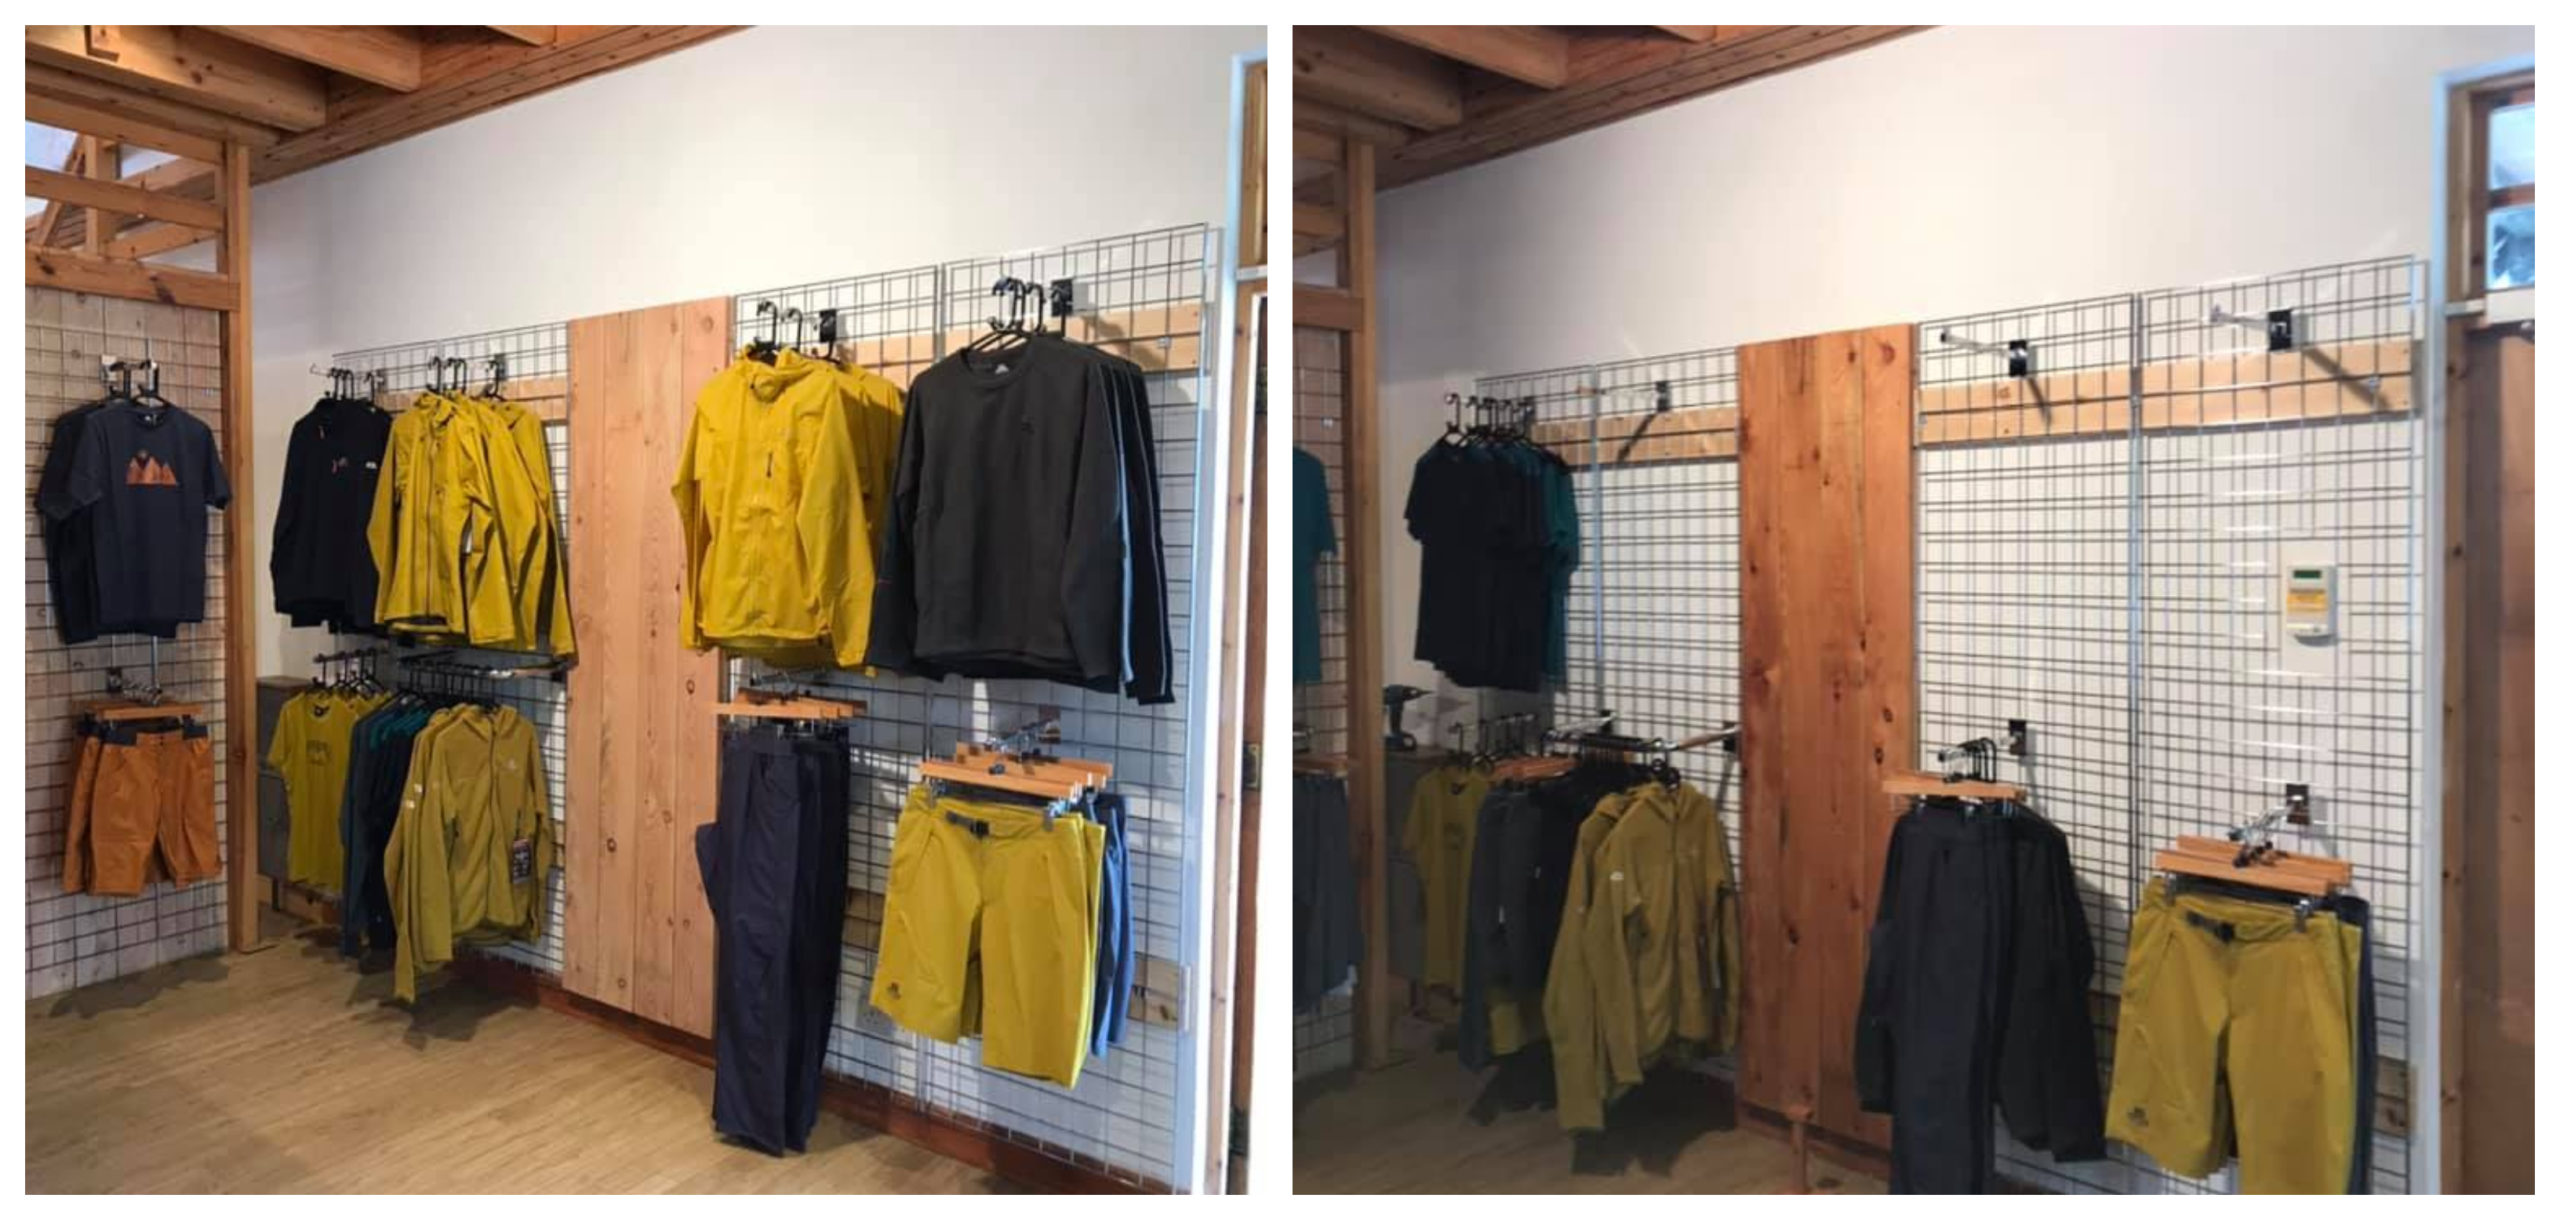 Before and after: Some of the items stolen from the shop